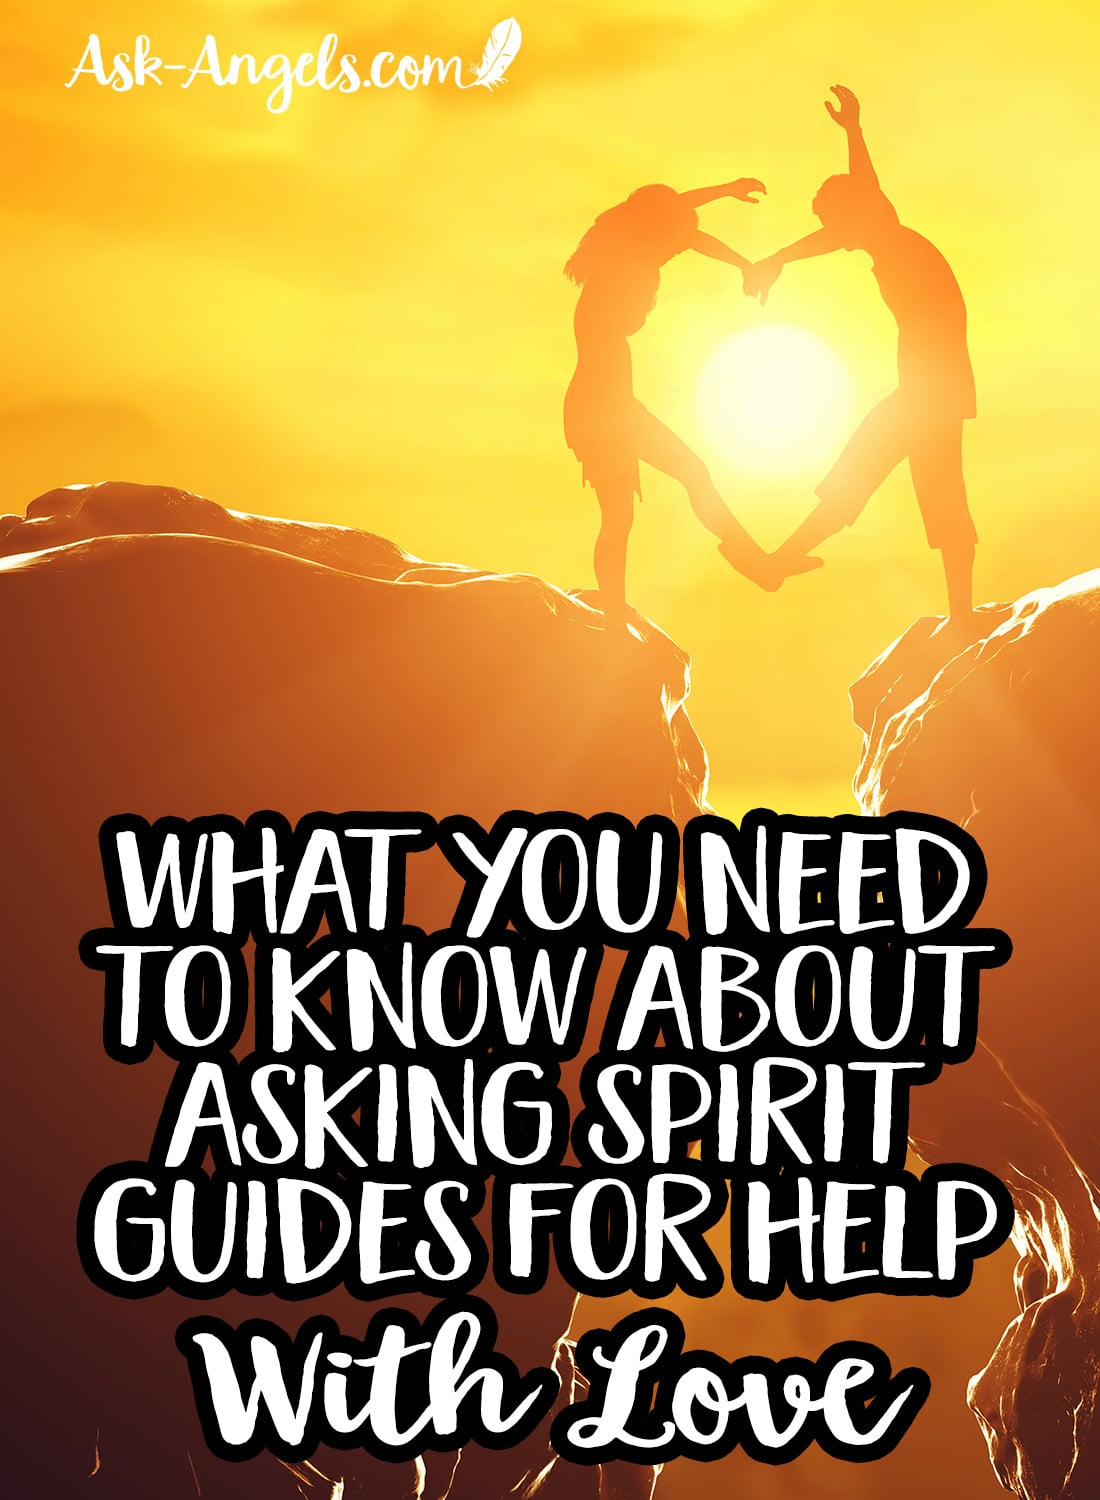 What you need to know about asking spirit guides for help with love